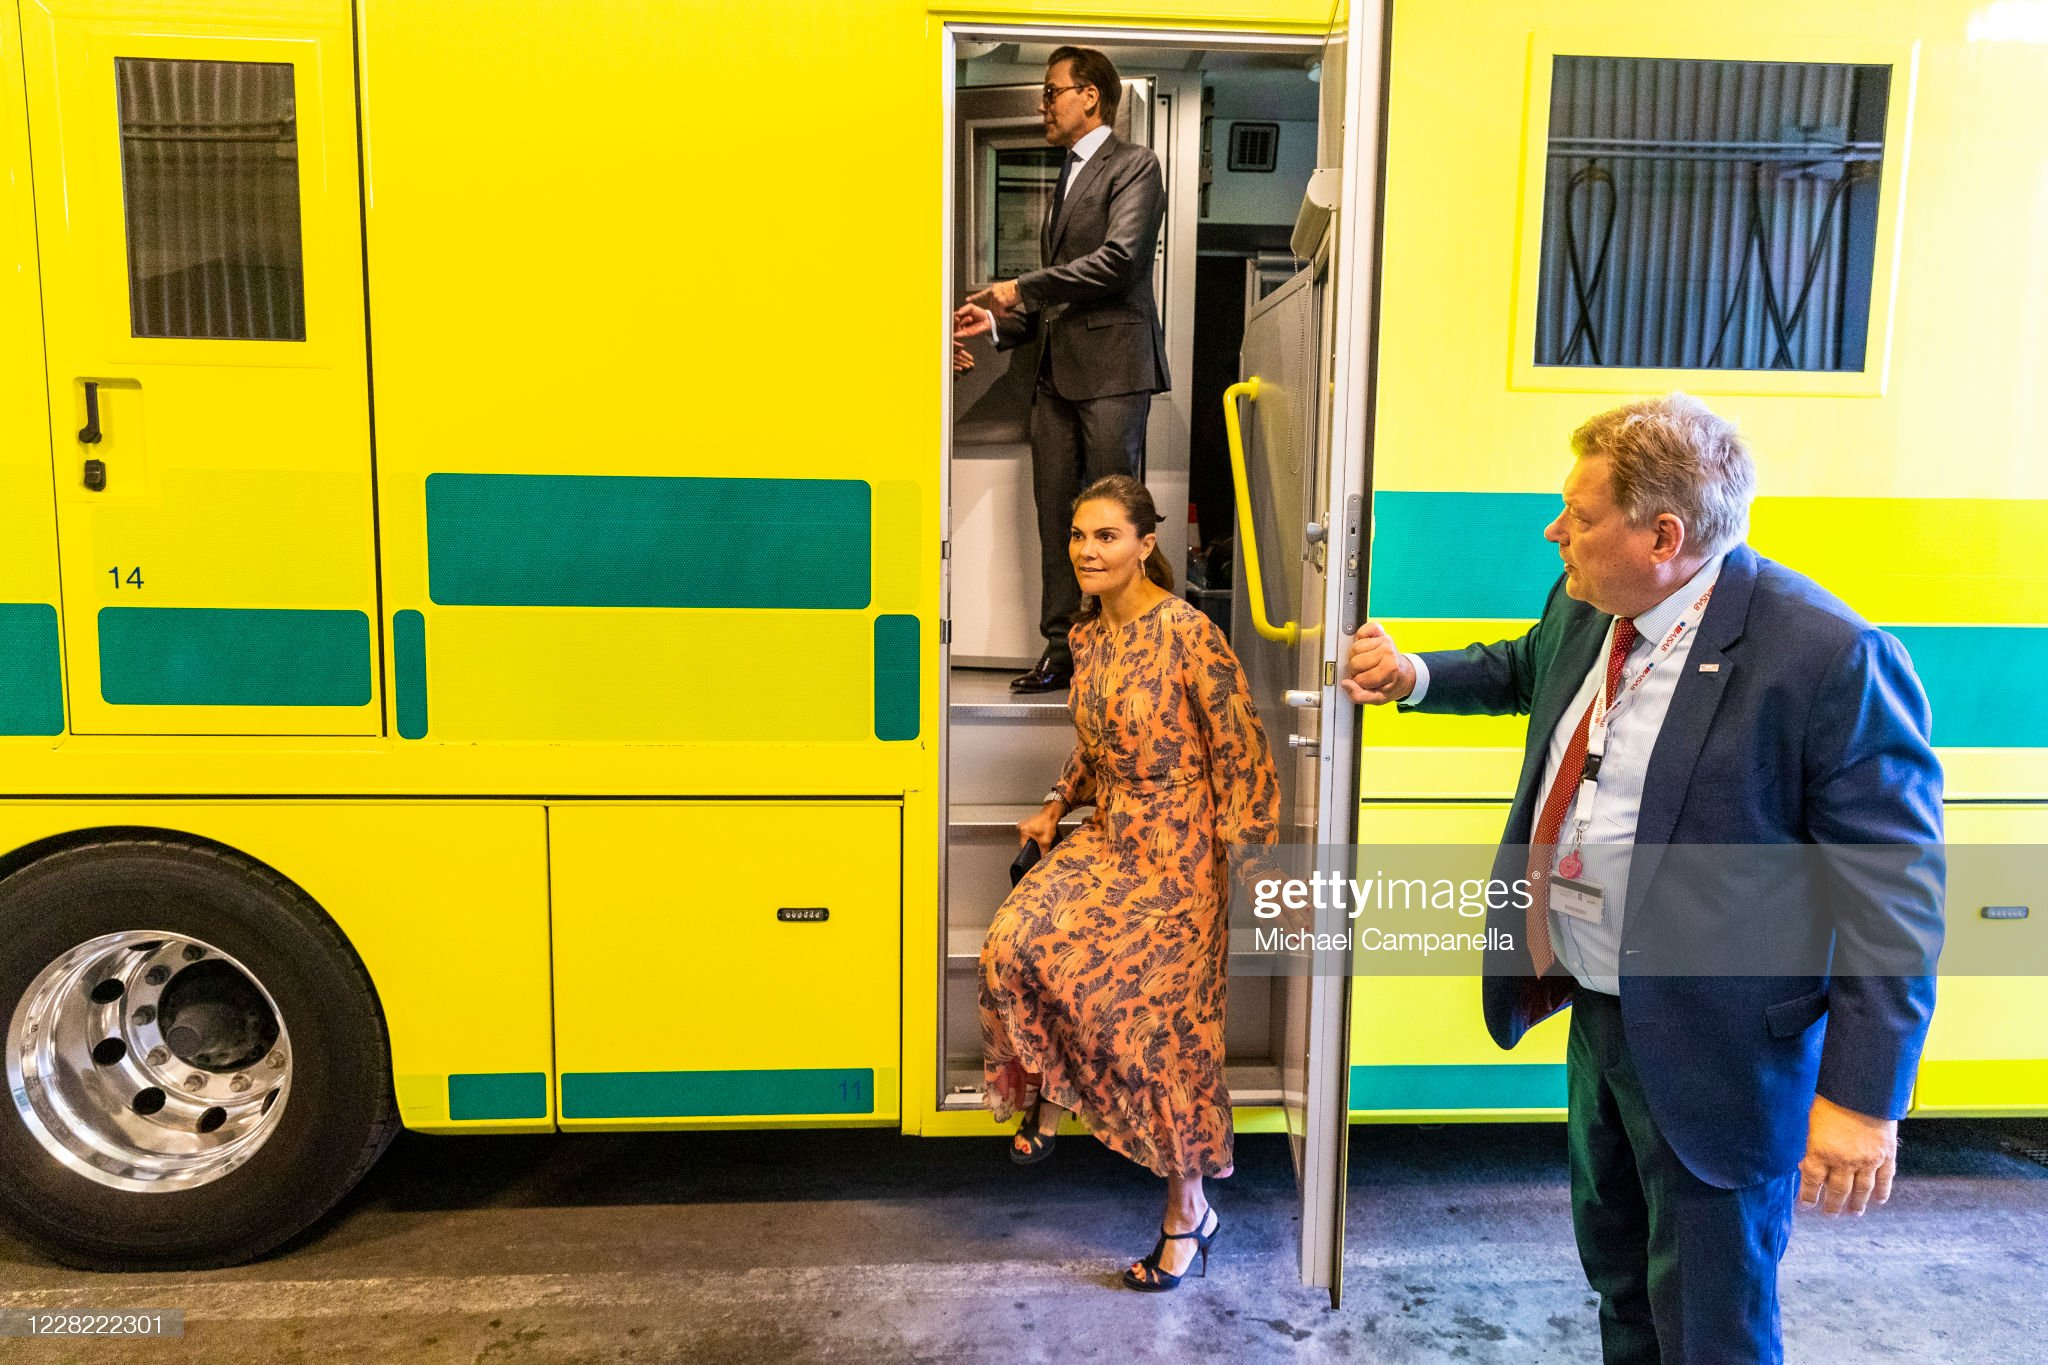 crown-princess-victoria-and-prince-daniel-of-sweden-visit-an-station-picture-id1228222301